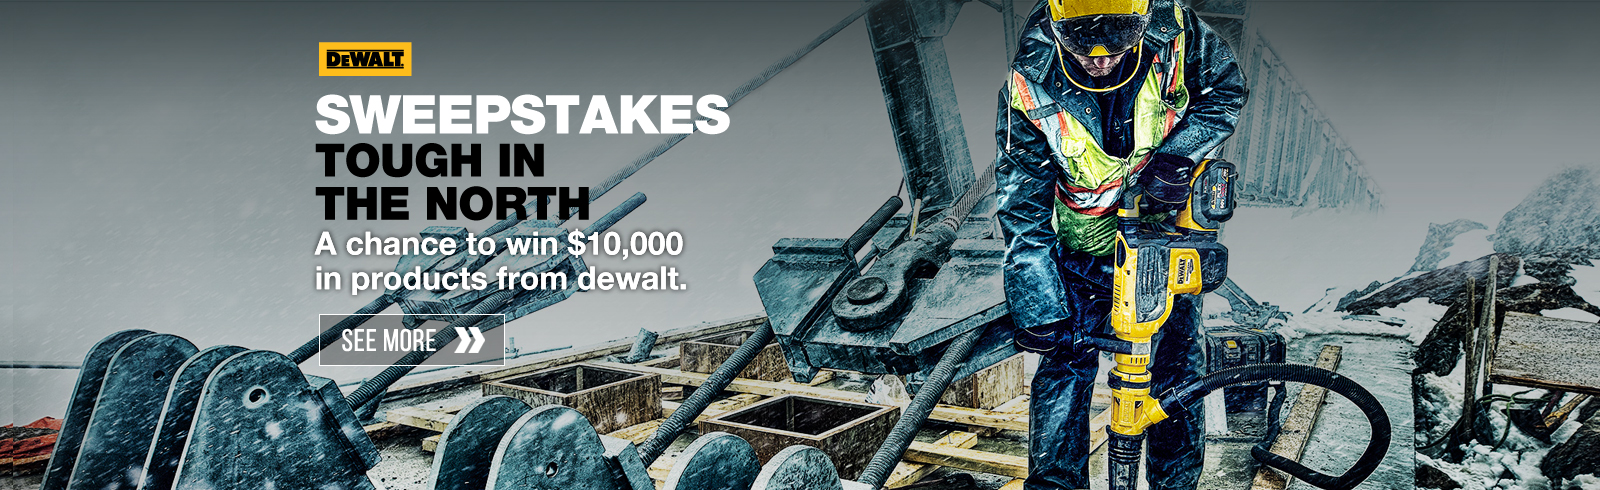 A chance ton win $10,000 in products from dewalt